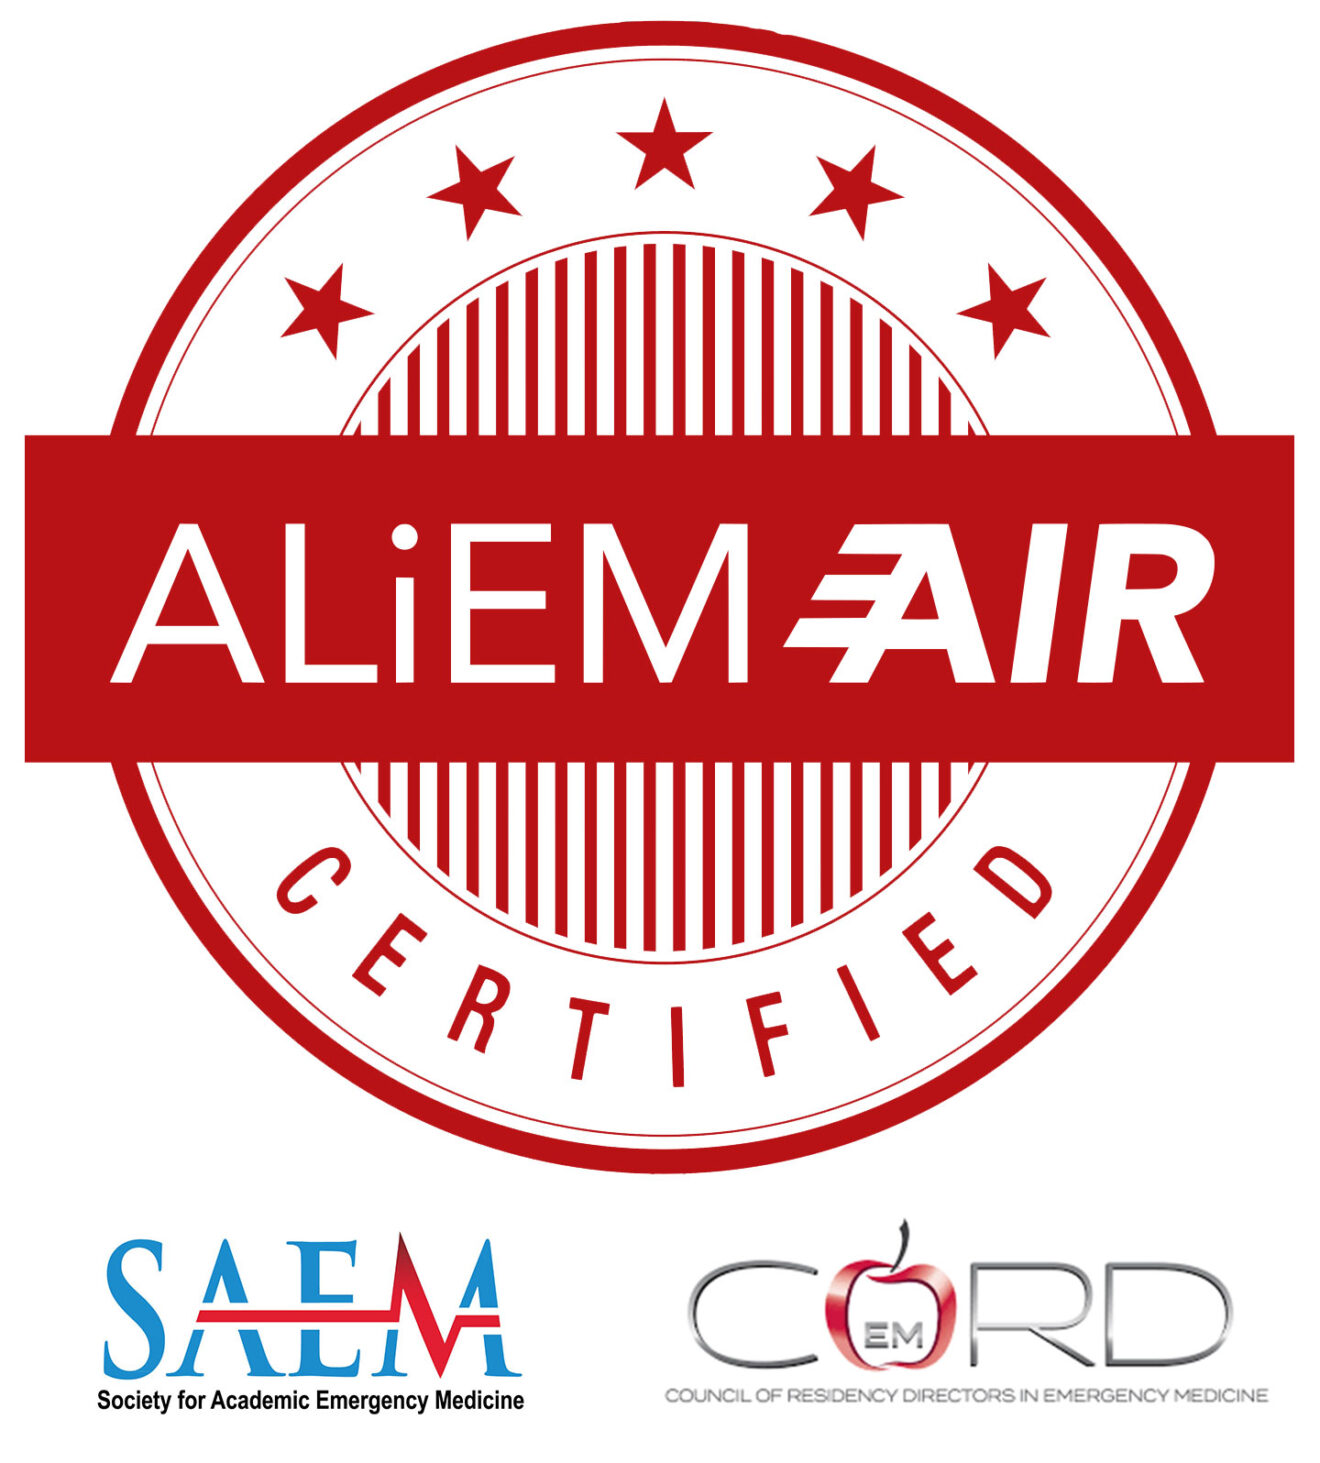 AIR-logo-2016-transparent-SAEM-CORD